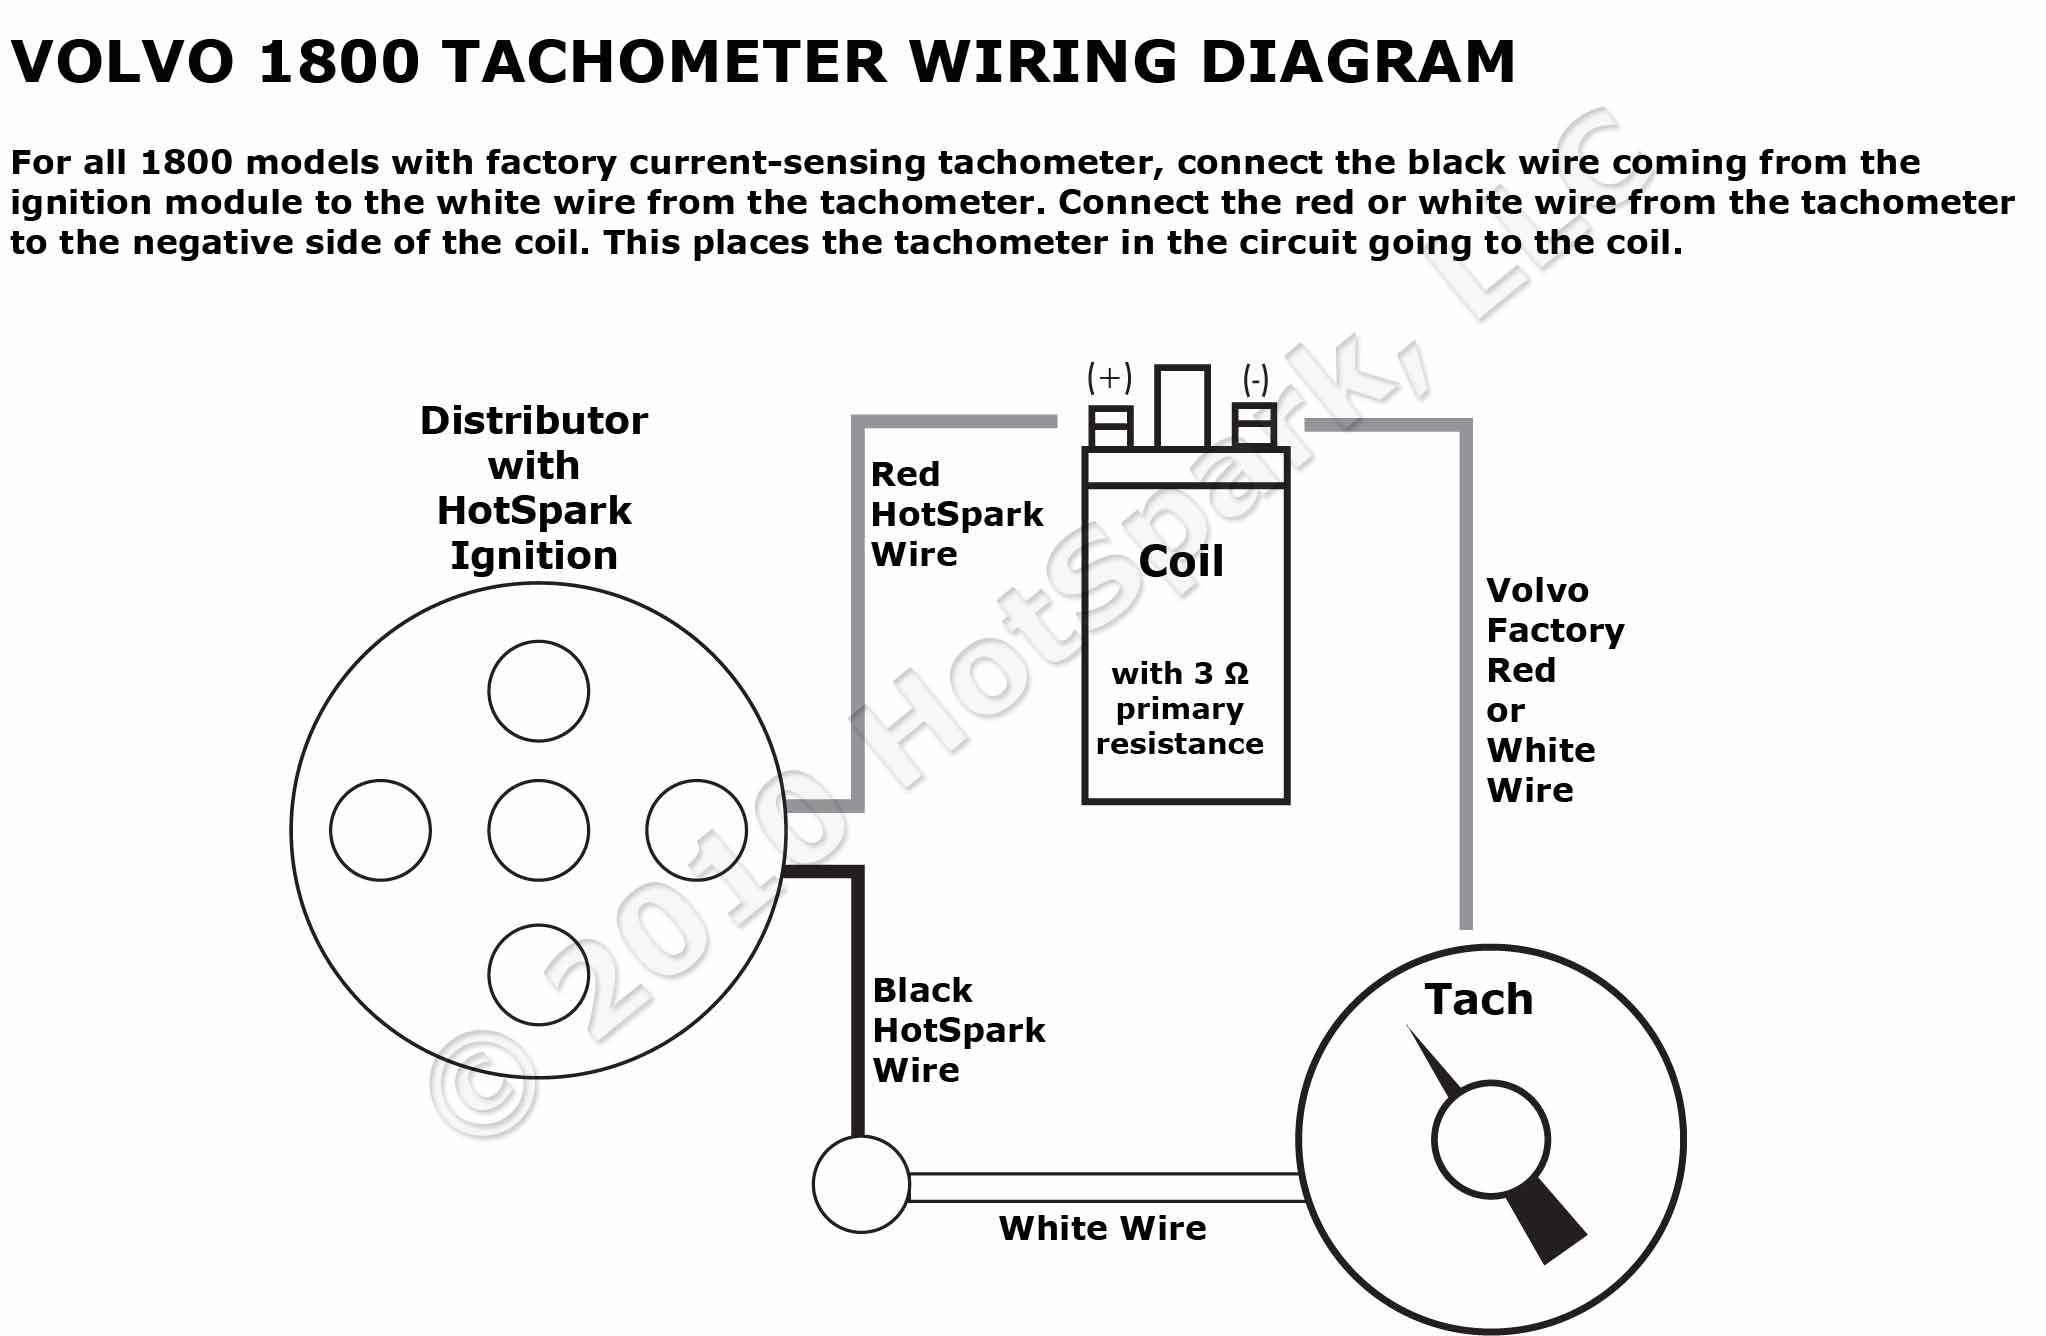 Volvo 1800 Tachometer and Hot Spark Wiring Diagram volvo 1800 tachometer wiring diagram with hotspark ignition on electronic tachometer wiring diagram